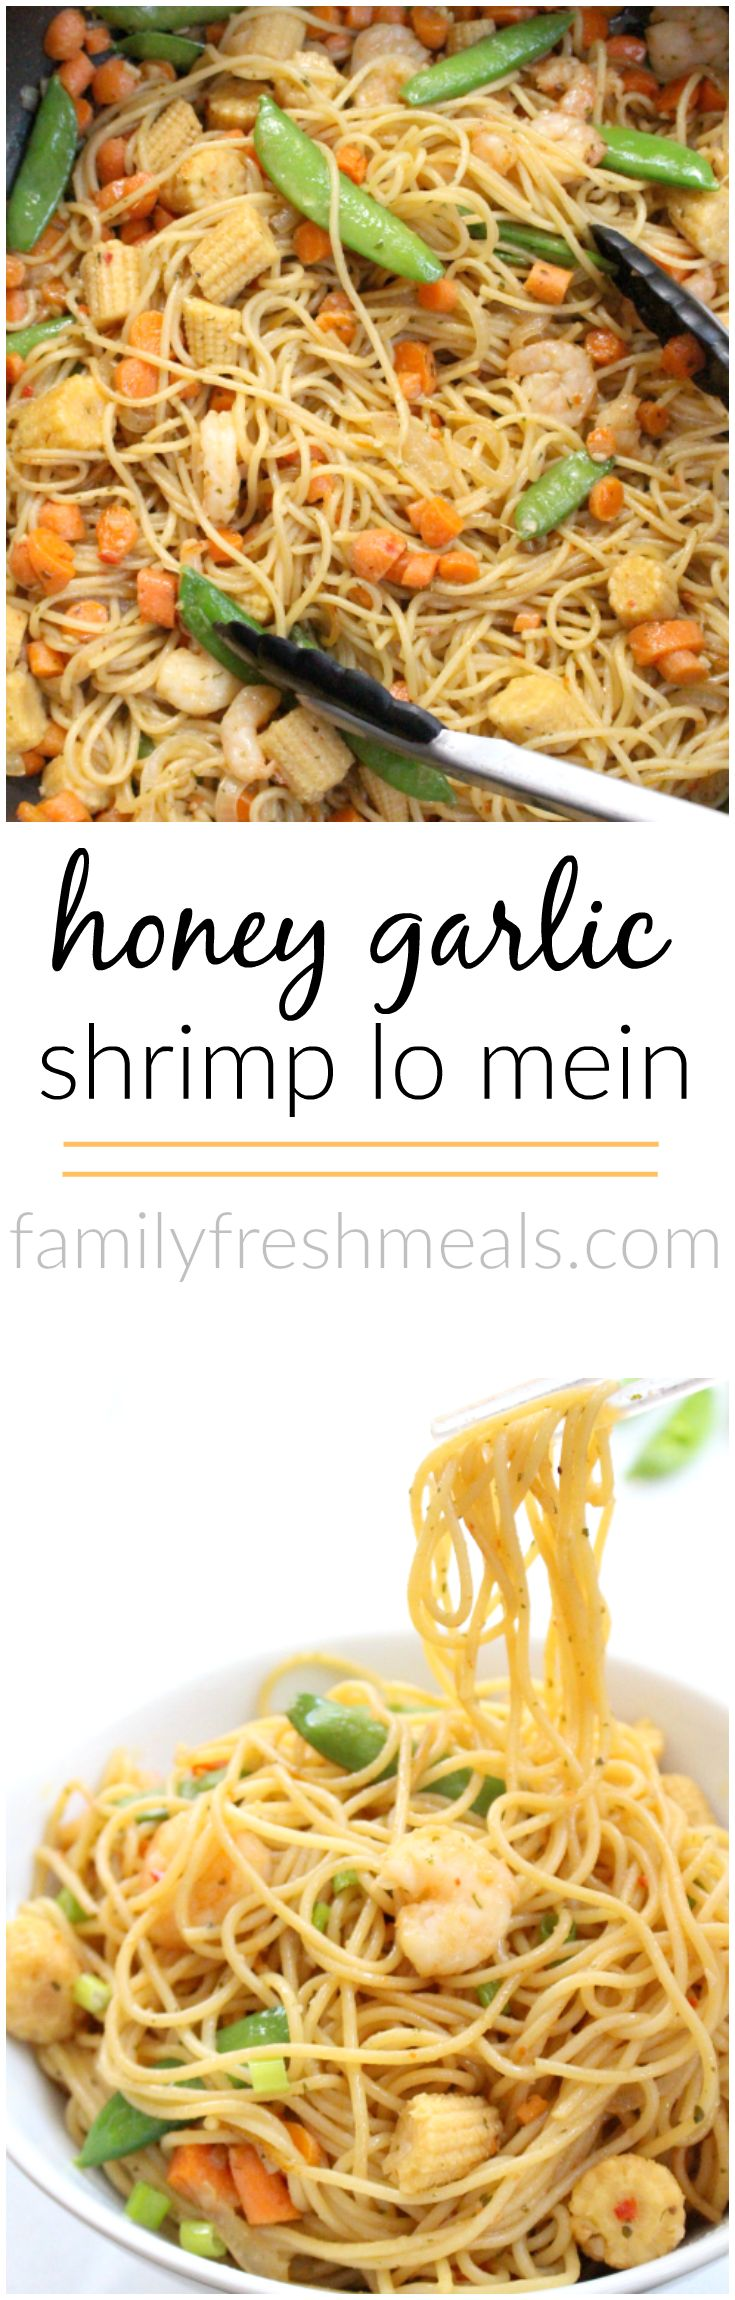 This Honey Garlic Shrimp Lo Mein is so easy to make! It's full of veggies and shrimp. Takes only minutes to make and will be an instant family favorite! #familyfreshmeals #Shrimptacular